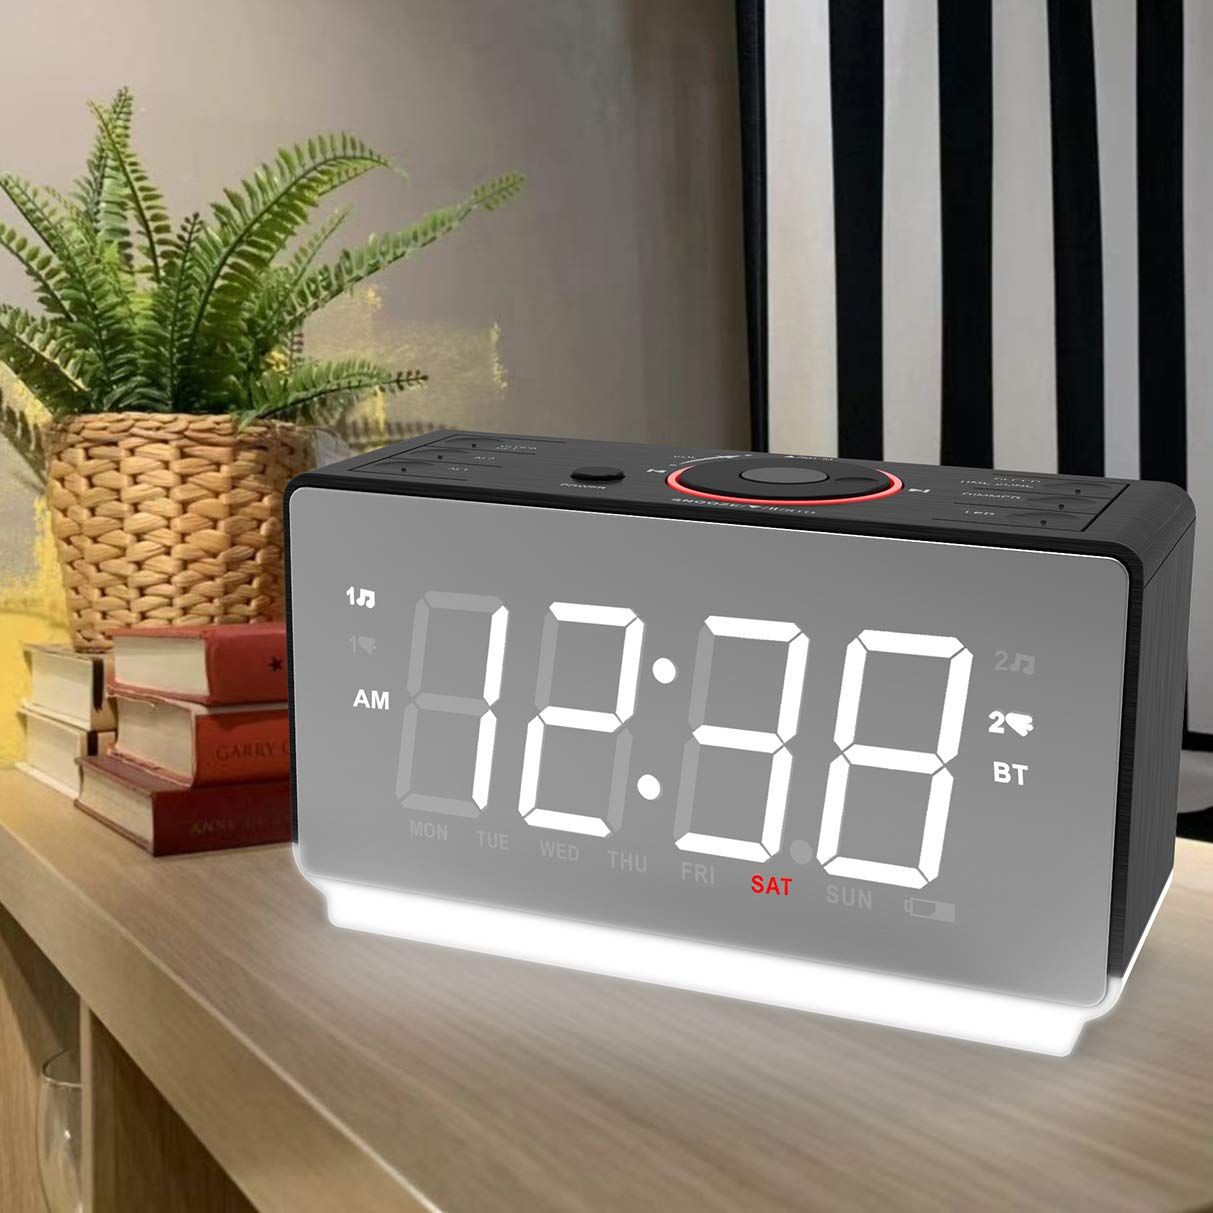 Emerson White Jumbo Mirror Display Dual Alarm Clock Radio with USB Charging, Shuttle Wheel, LED Decor, Earphone Jack and Bluetooth Speaker, ER100116